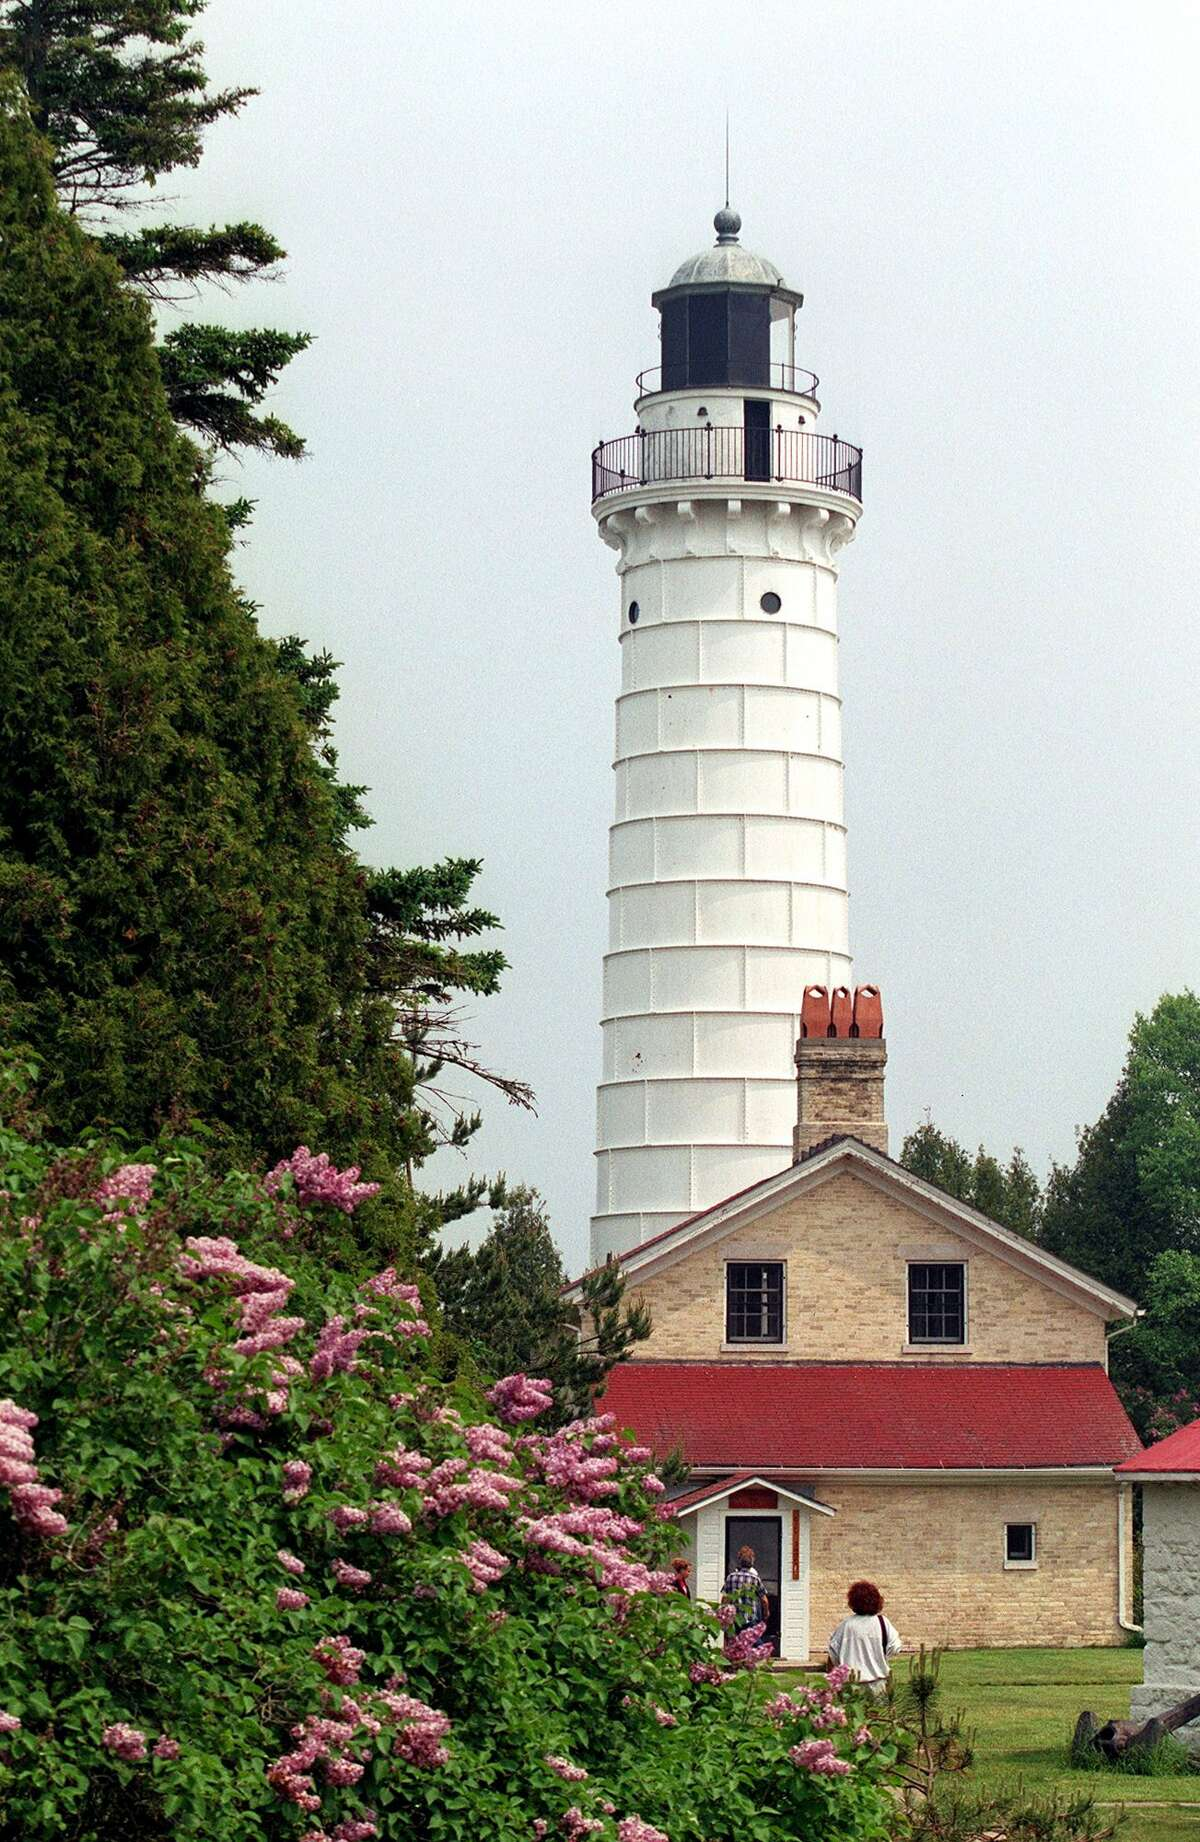 The Door County Peninsula has 10 lighthouses, including the Cana Island Lighthouse, built in 1869. PHOTOGRAPH BY TOM UHLENBROCK/ST. LOUIS POST-DISPATCH